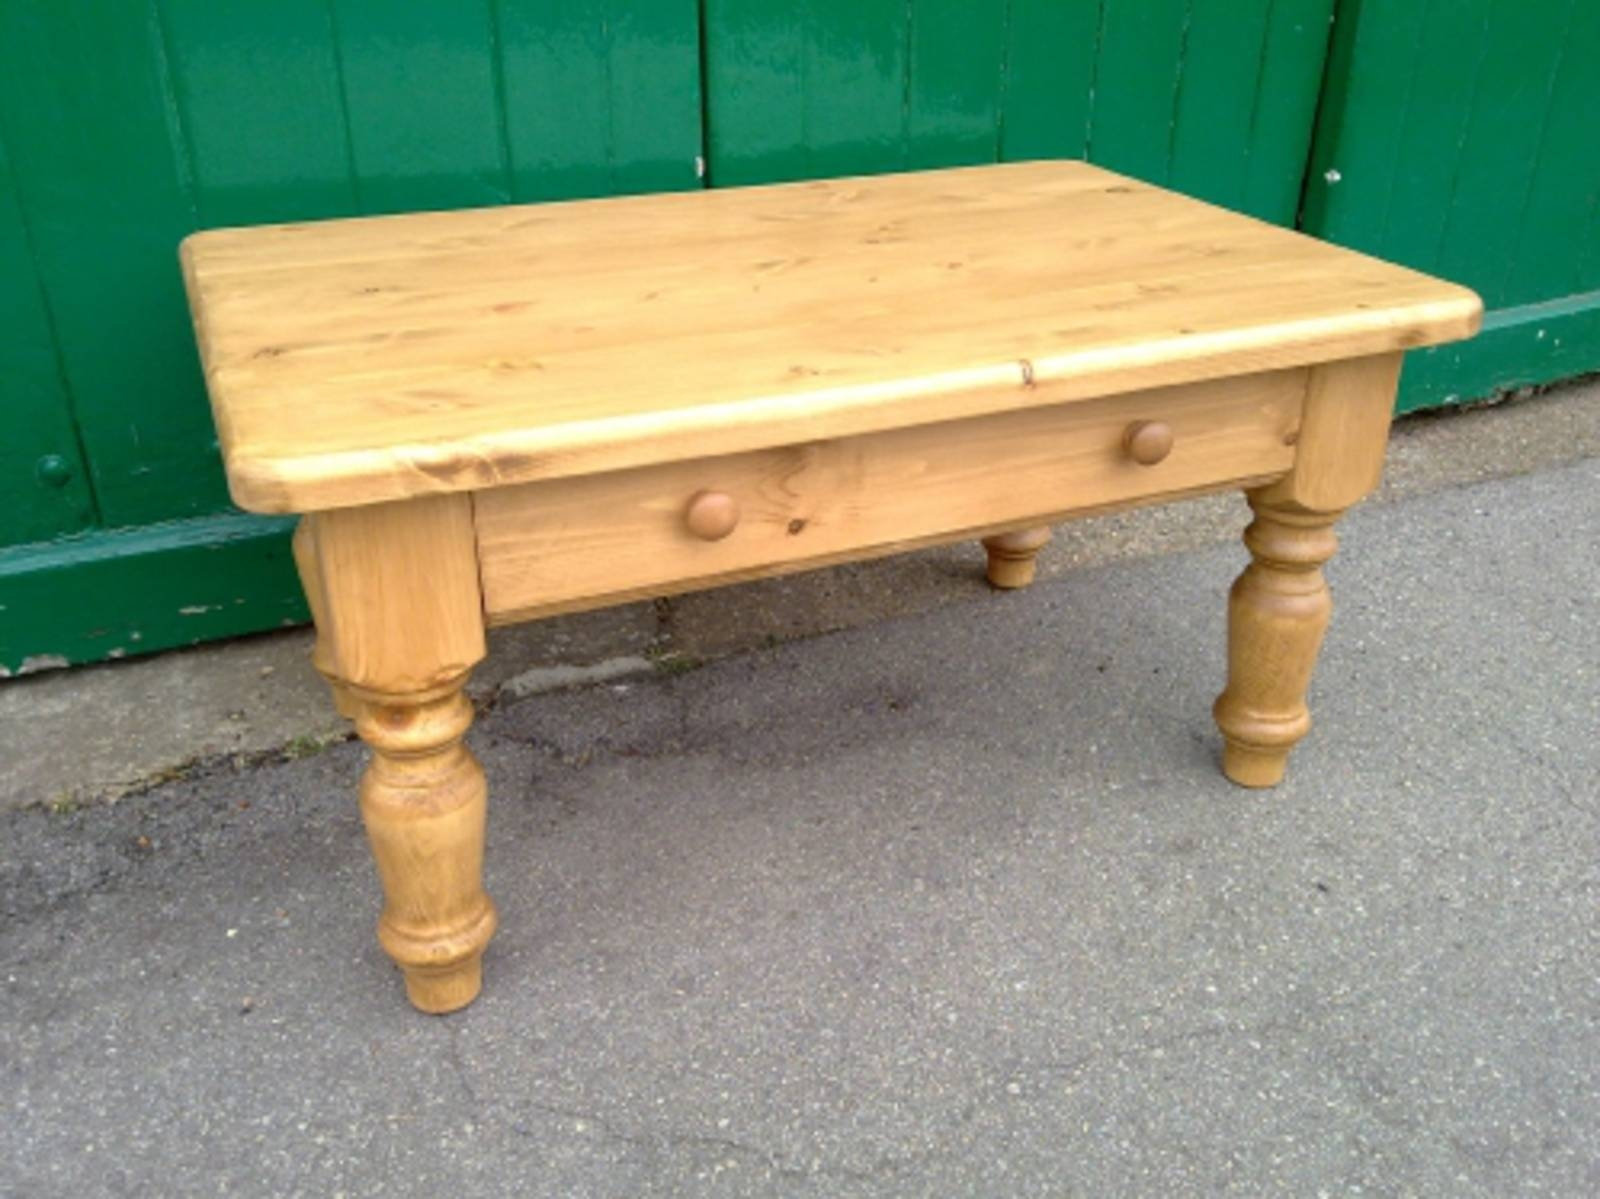 Edmunds 3' X 2' Coffee Table - - Pine Shop Bury throughout Pine Coffee Tables (Image 9 of 30)